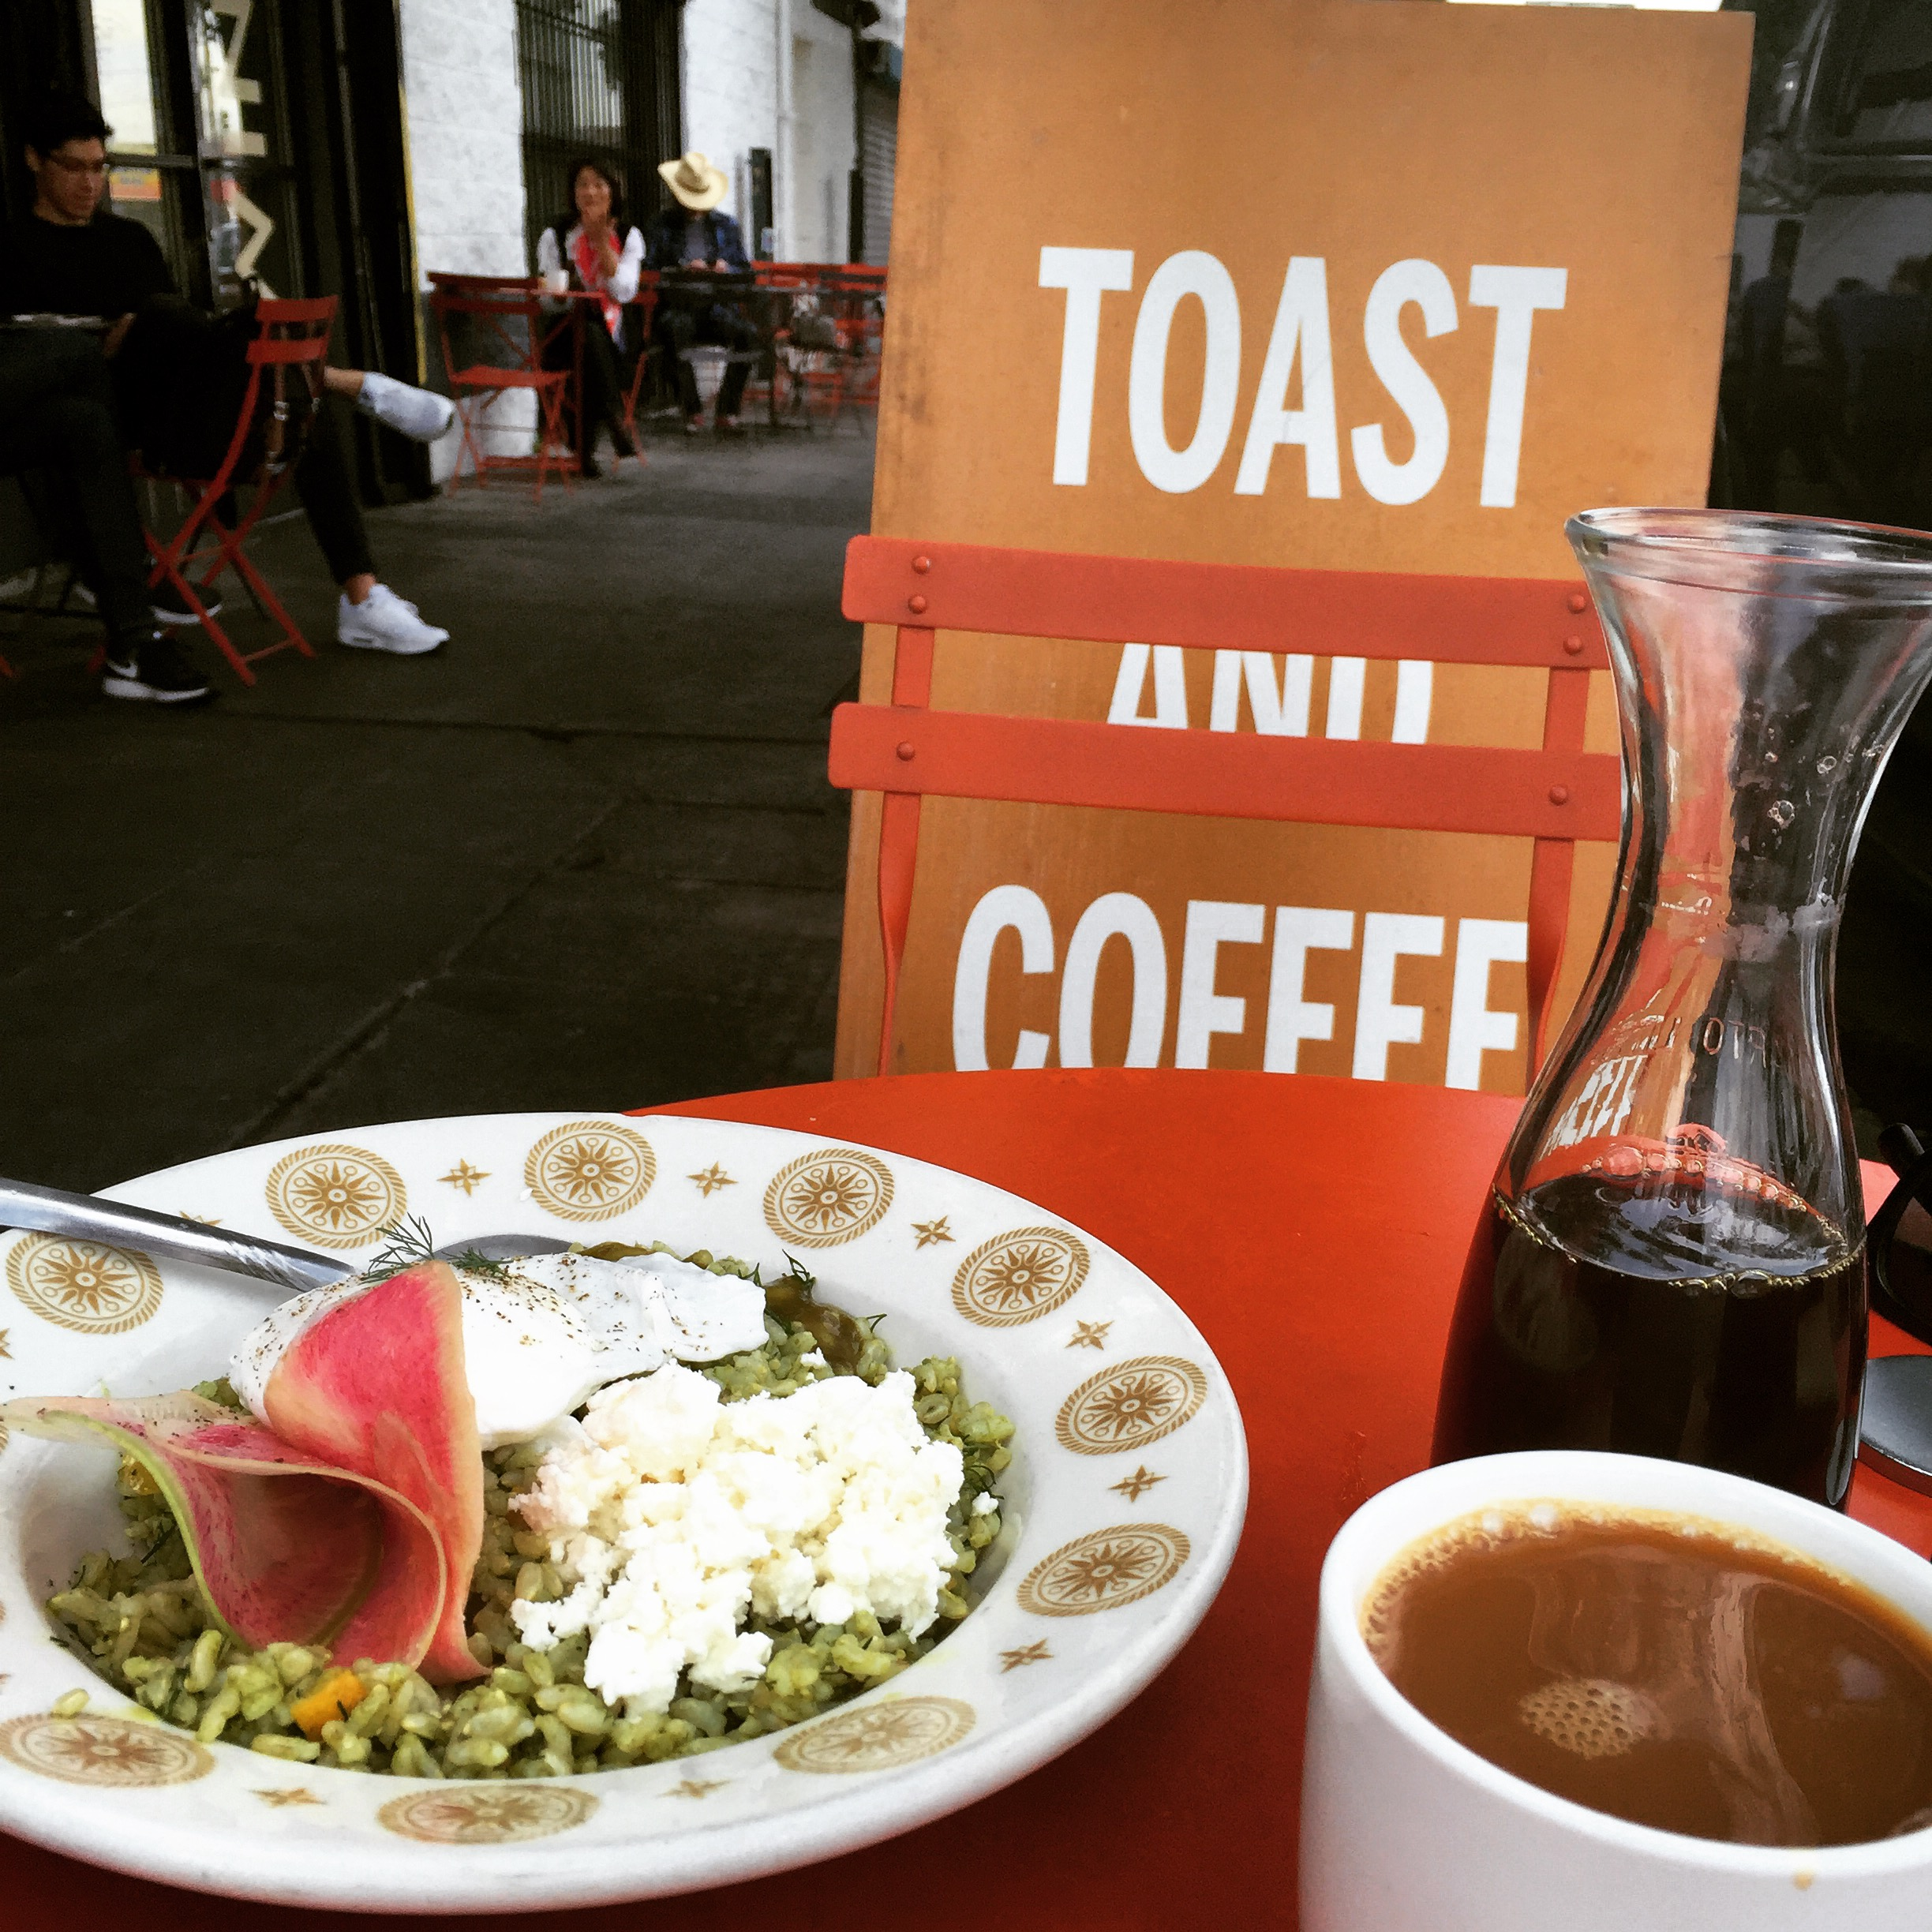 Favorite meal of the trip from SQIRL in Silverlake. Pour over coffee, sorrel pesto rice bowl with poached egg, and ricotta brioche toast with homemade plum jam. PS you can buy the jam online  here !!